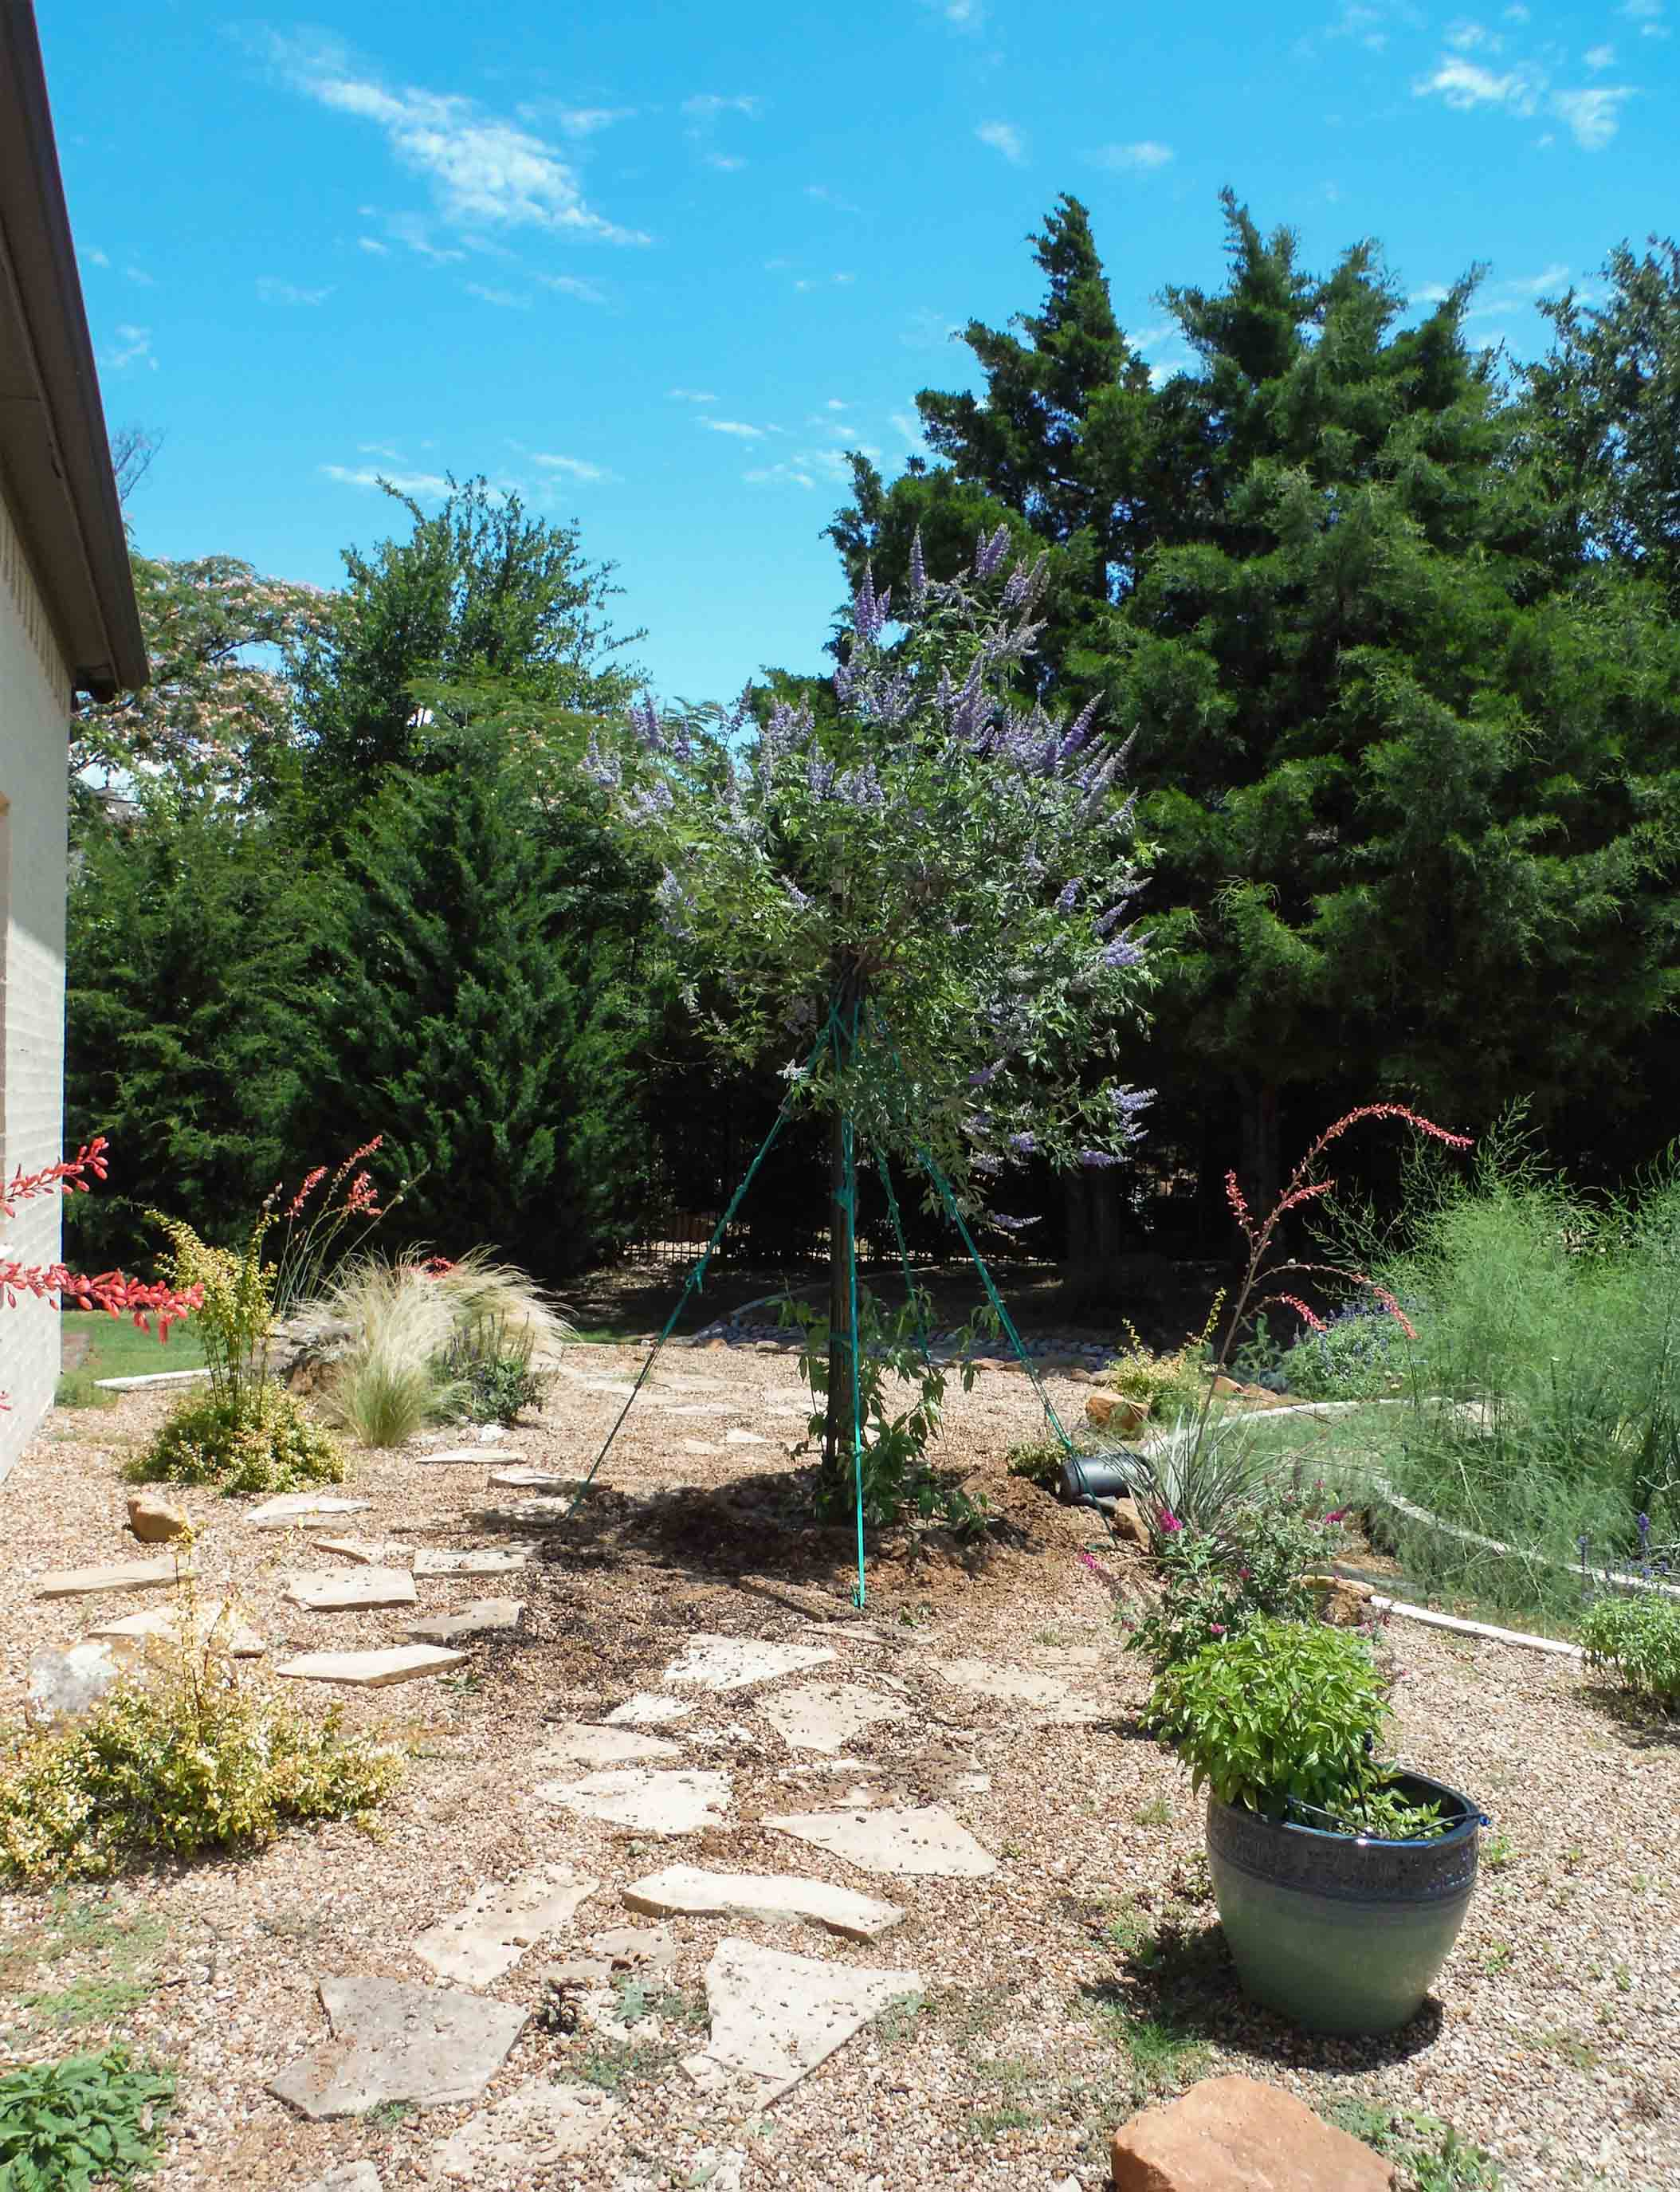 Single trunk Vitex installed in a backyard garden.